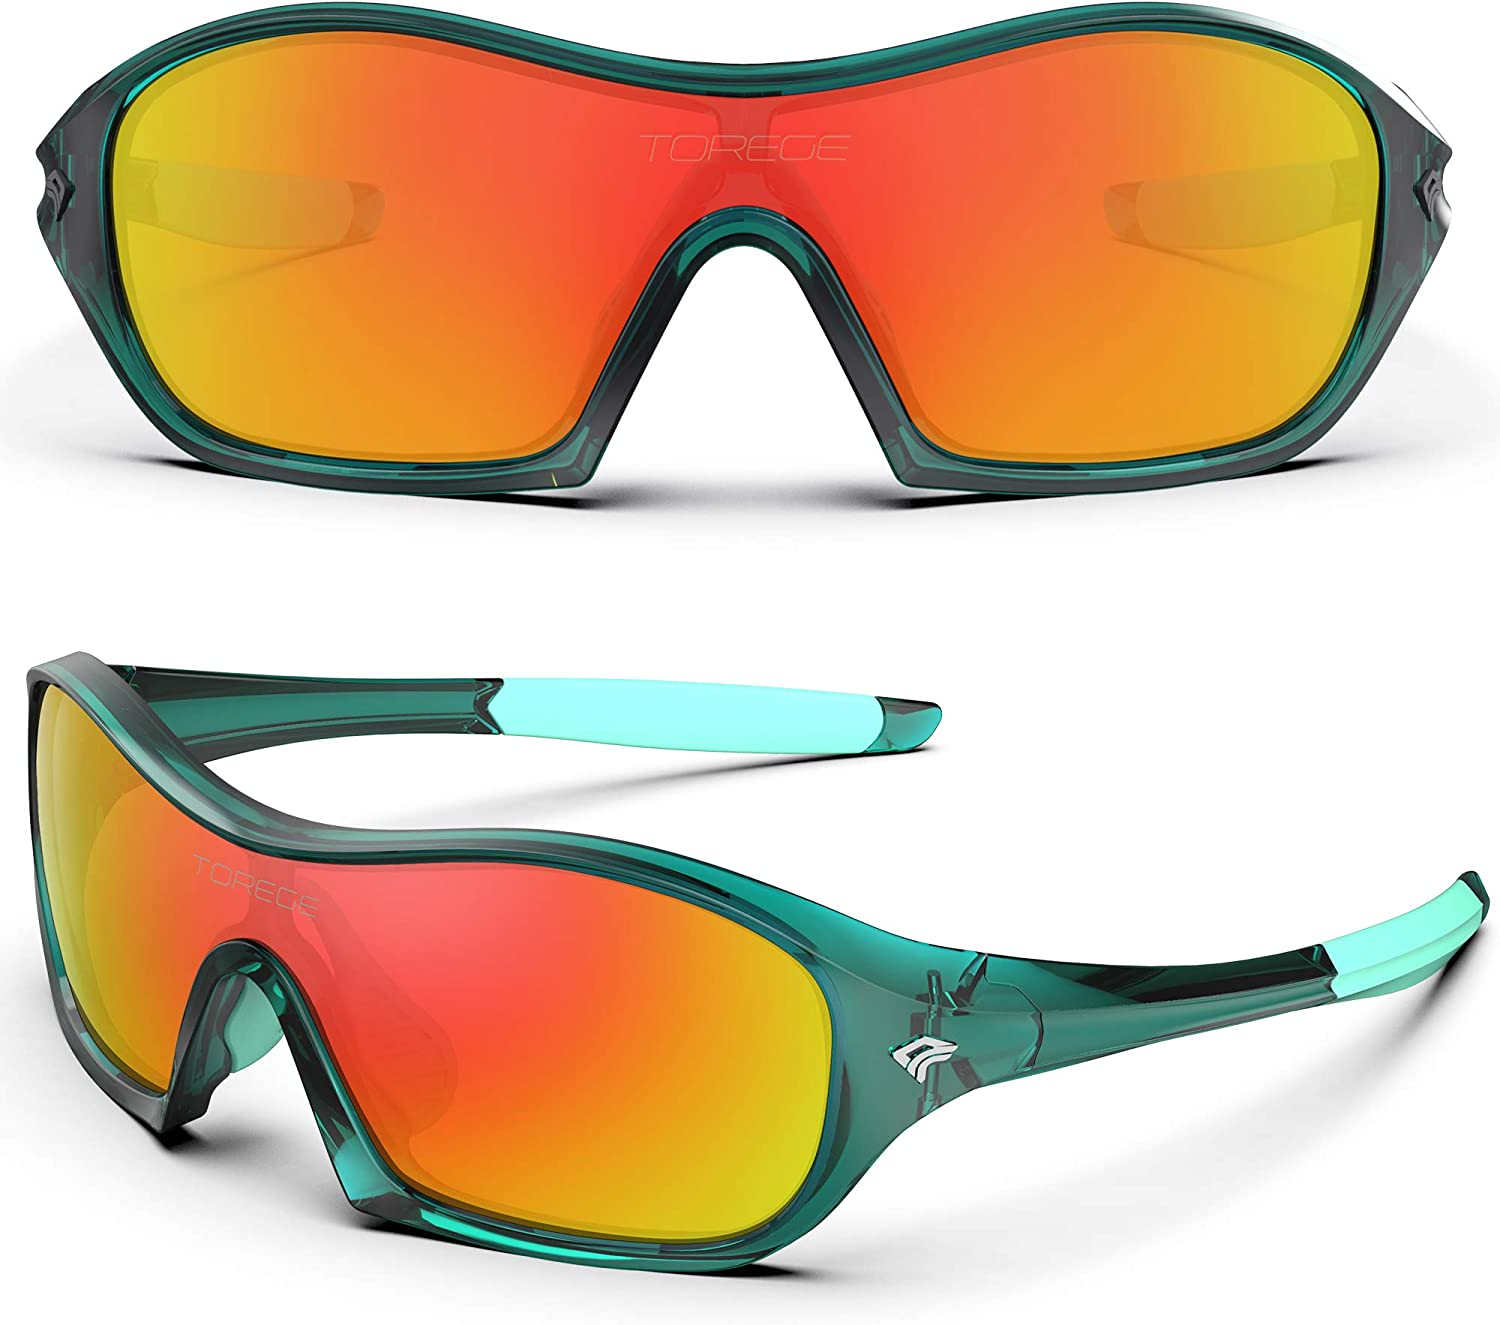 TOREGE Kids Sale special price Sunglasses Polarized Boys Sports and Courier shipping free for